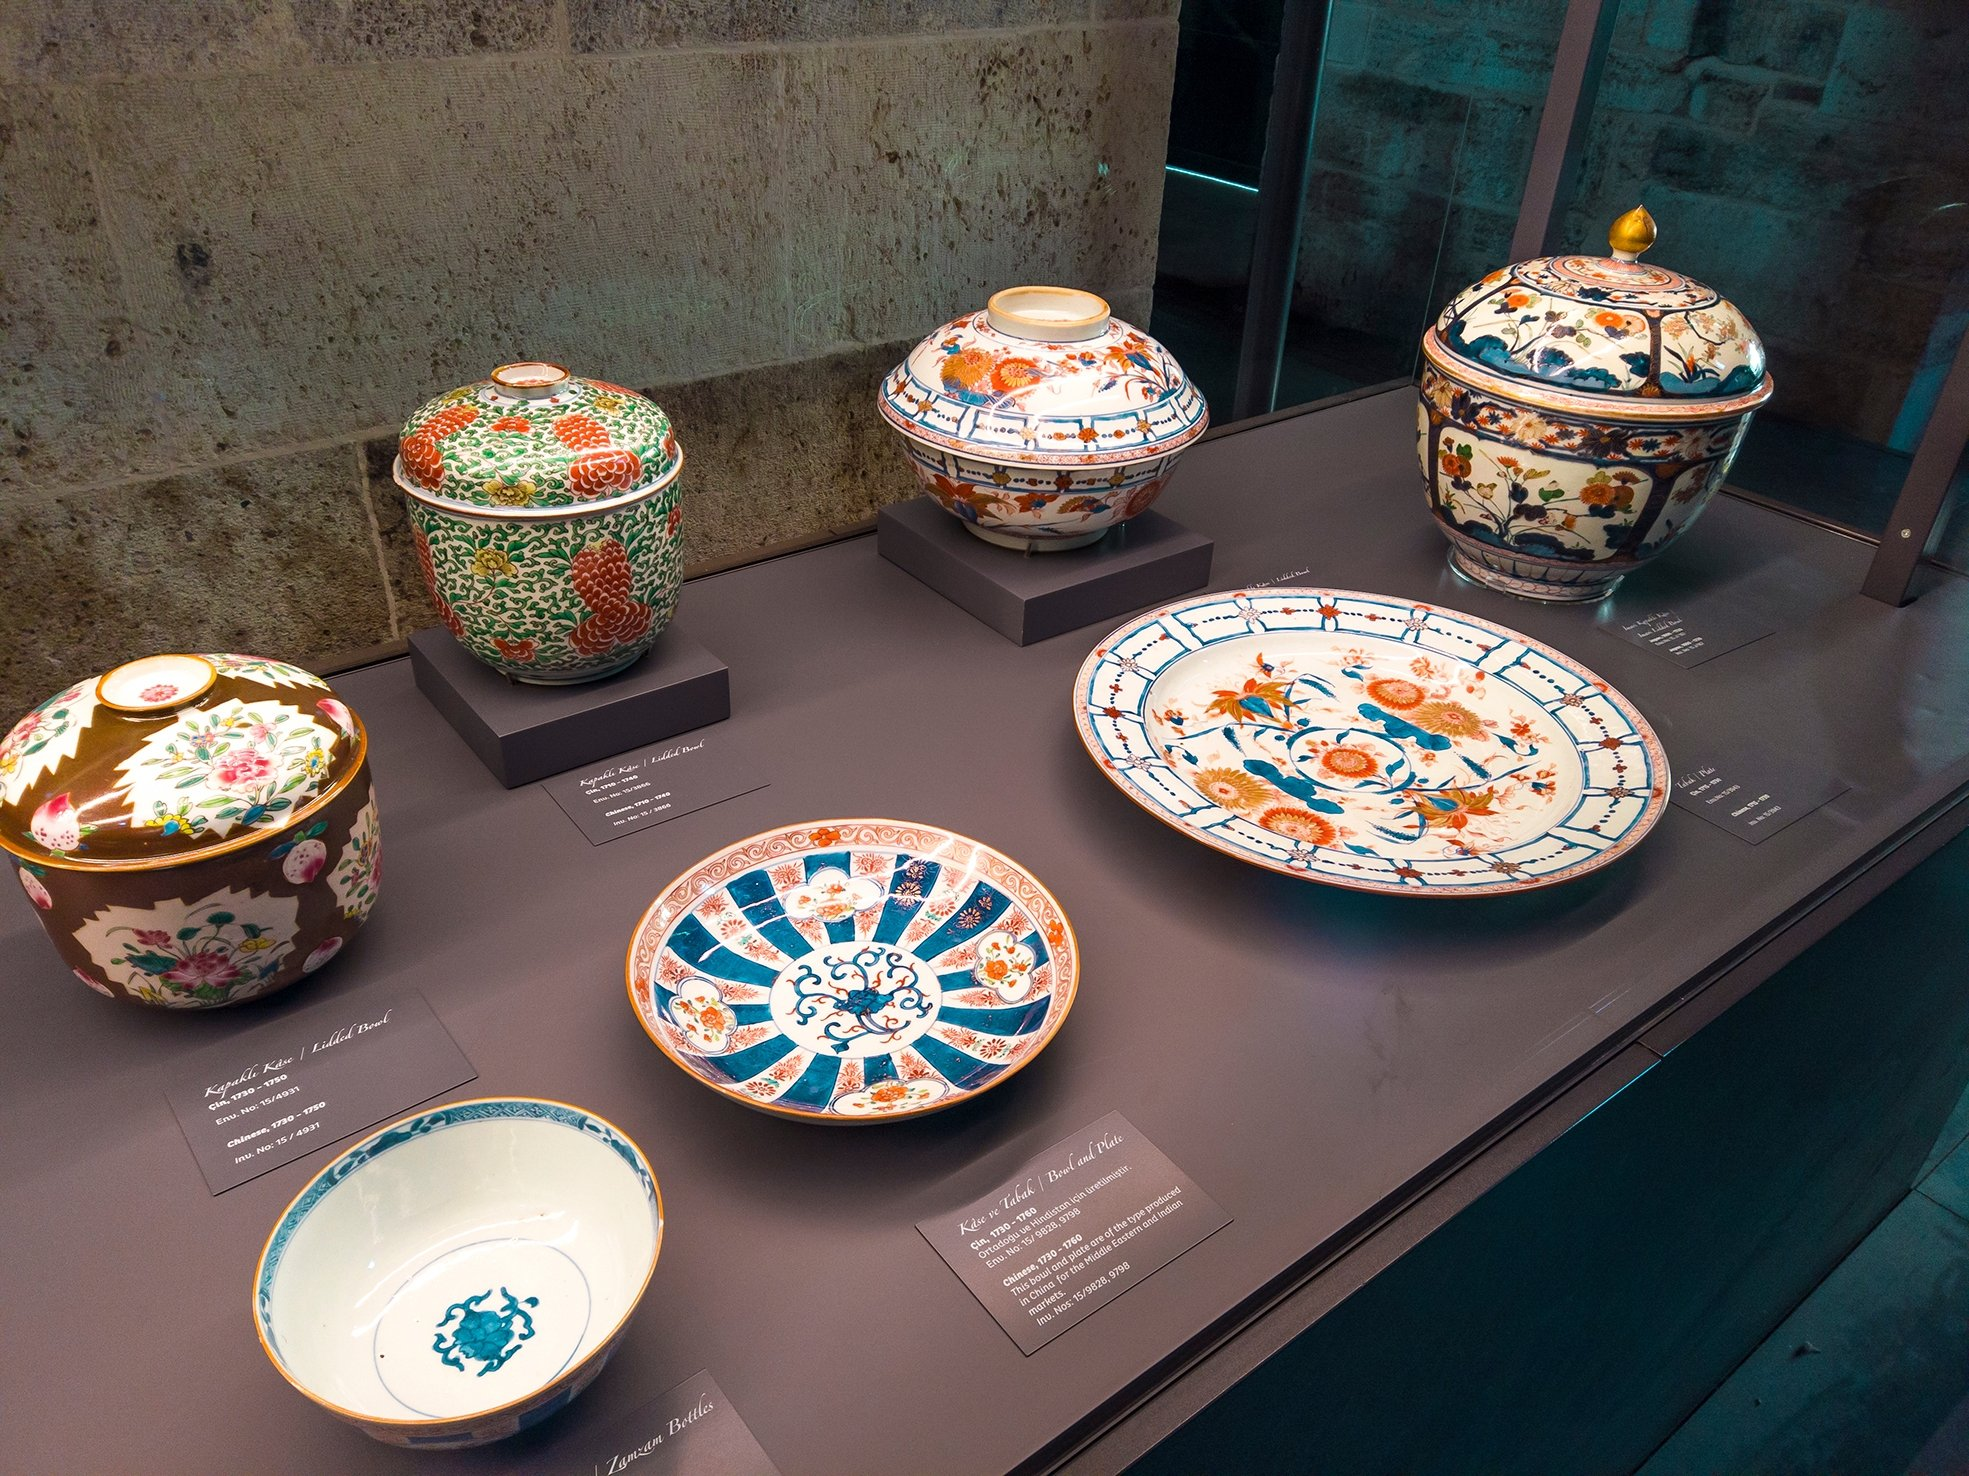 Ceramic works at the Museum of Turkish and Islamic Arts in Istanbul, Turkey, February 2020. (Shutterstock Photo)